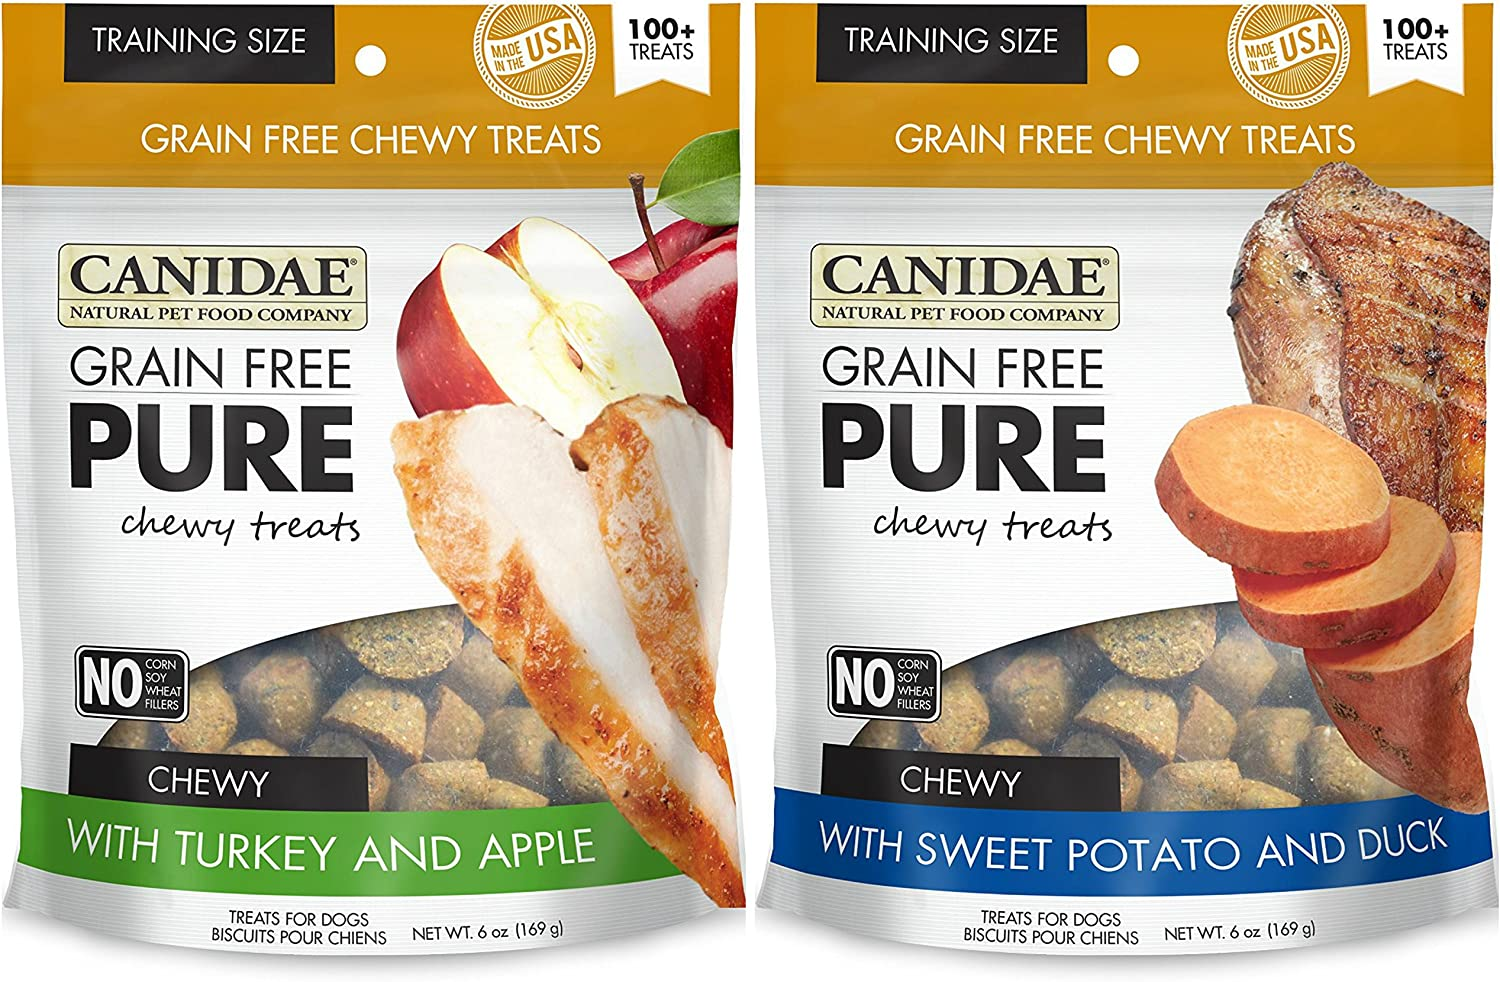 Canidae Grain Free Pure Chewy Dog Training Treats 2 Flavor Variety Bundle  (1) Chewy Training Treats with Sweet Potato & Duck and (1) Chewy Training Treats with Turkey & Apple, 6 Oz Ea (2 Bags Total)